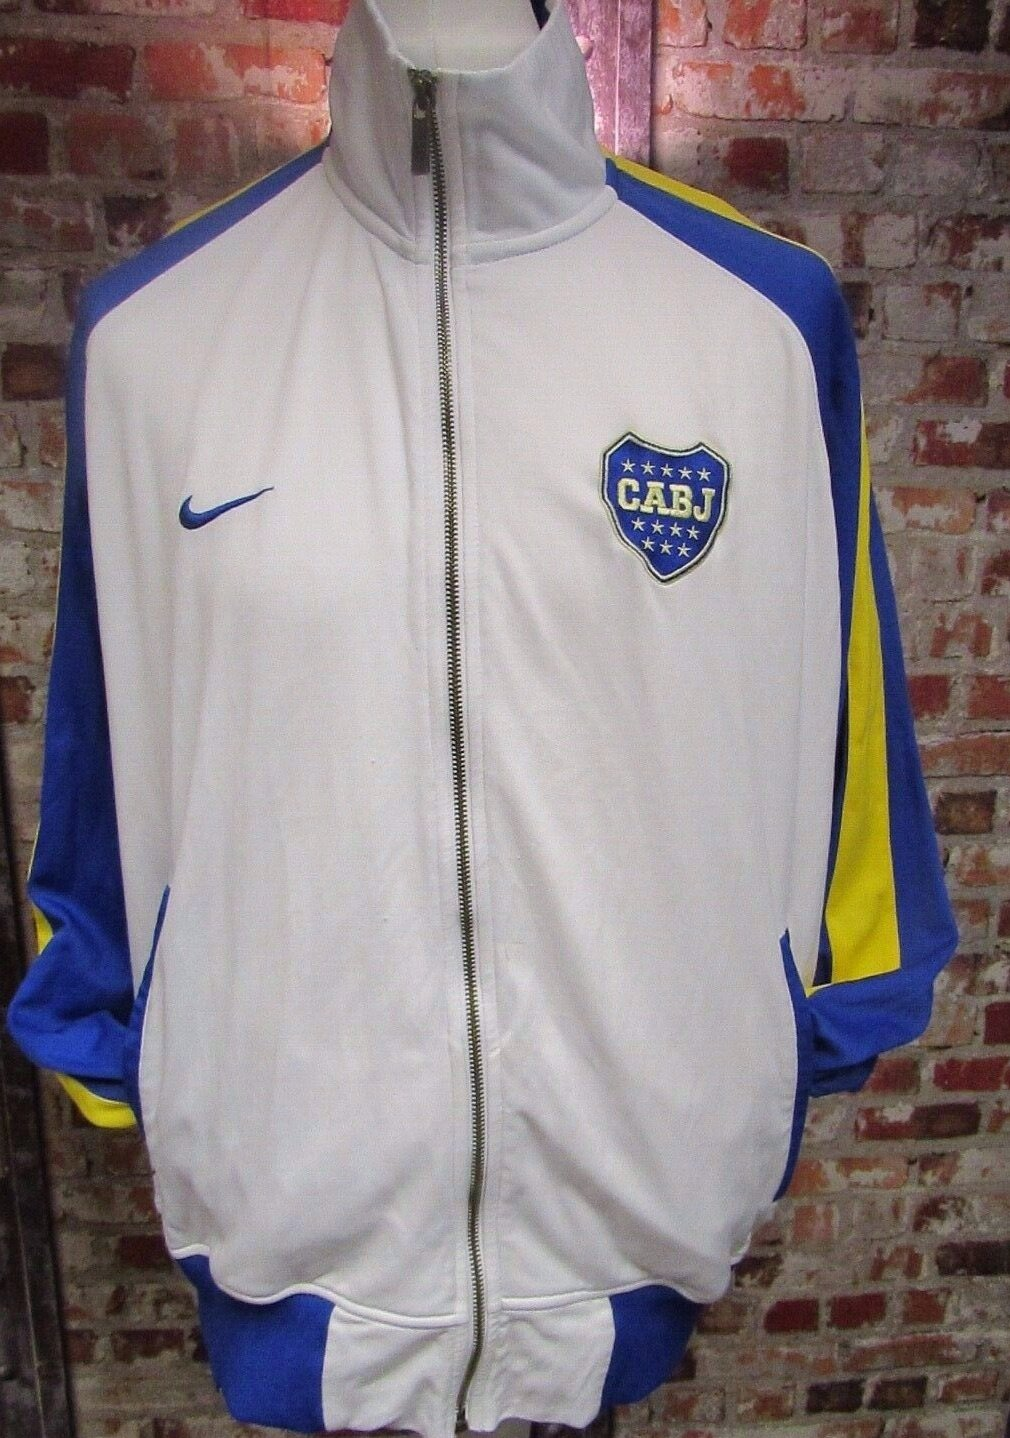 Nike Boca Juniors Mens Track Jacket White, Blue and Yellow Size XL